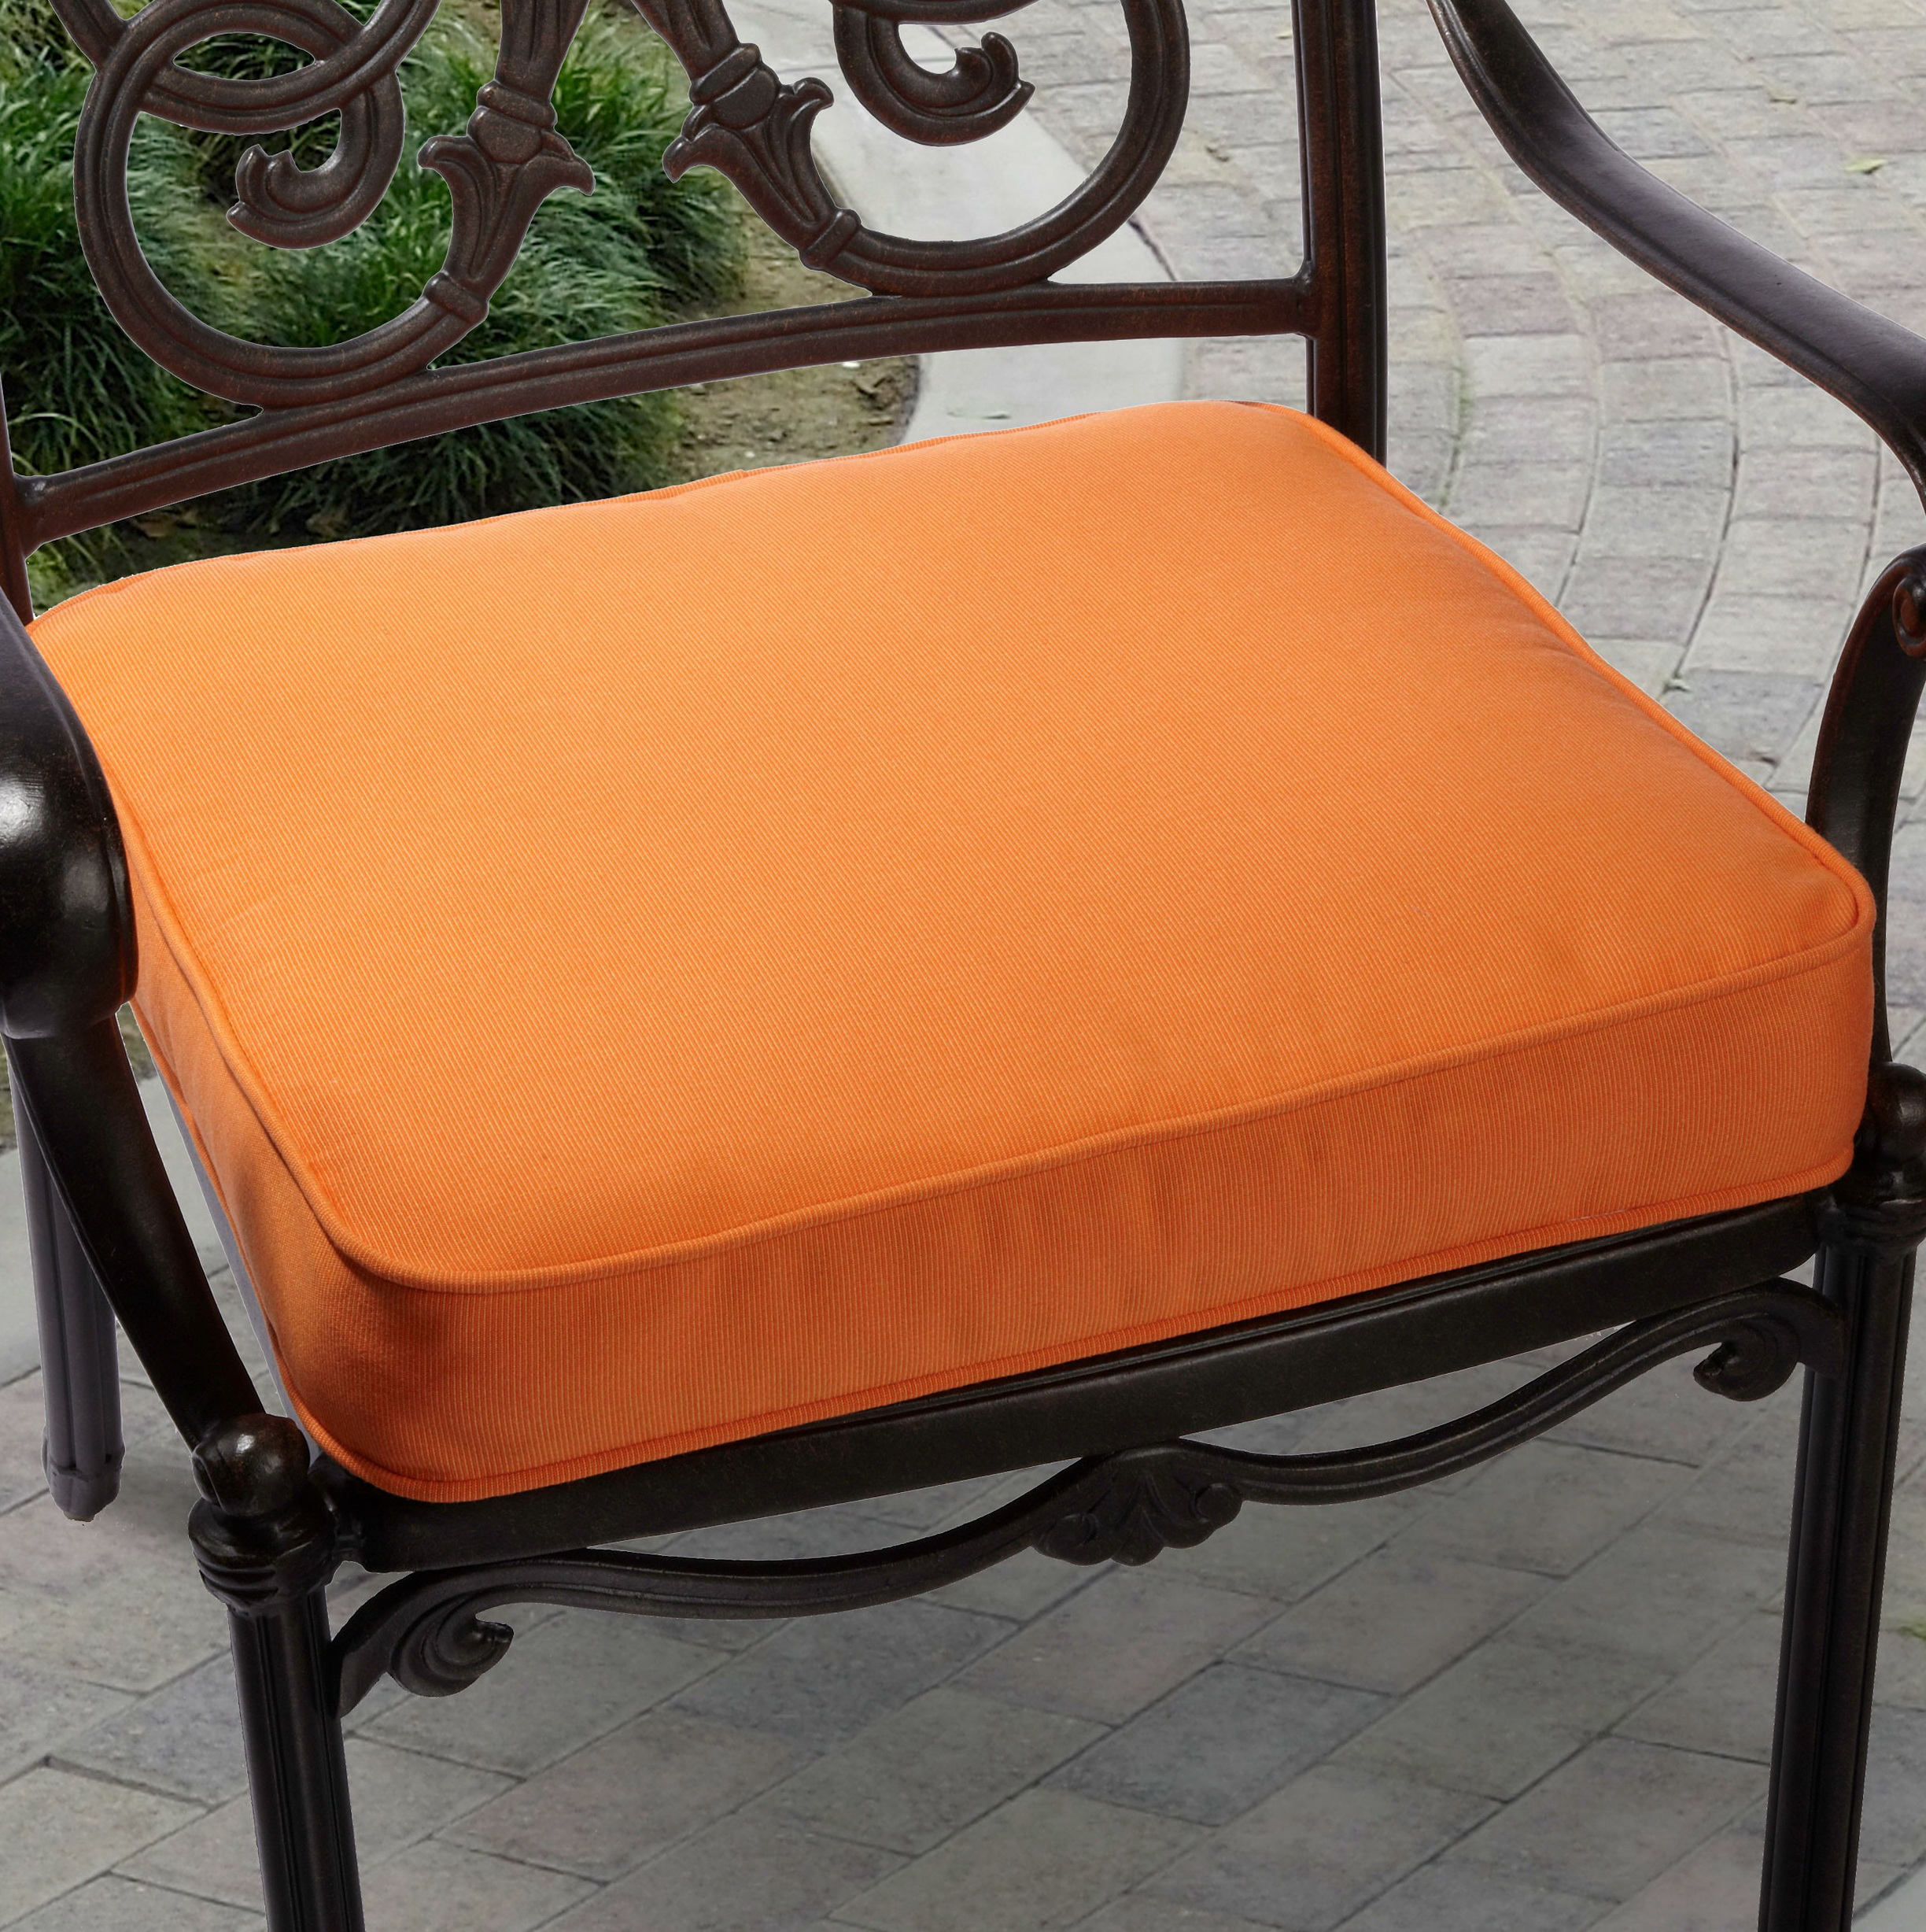 Patio furniture cushions sunbrella fabric home design ideas for Sunbrella patio furniture cushions